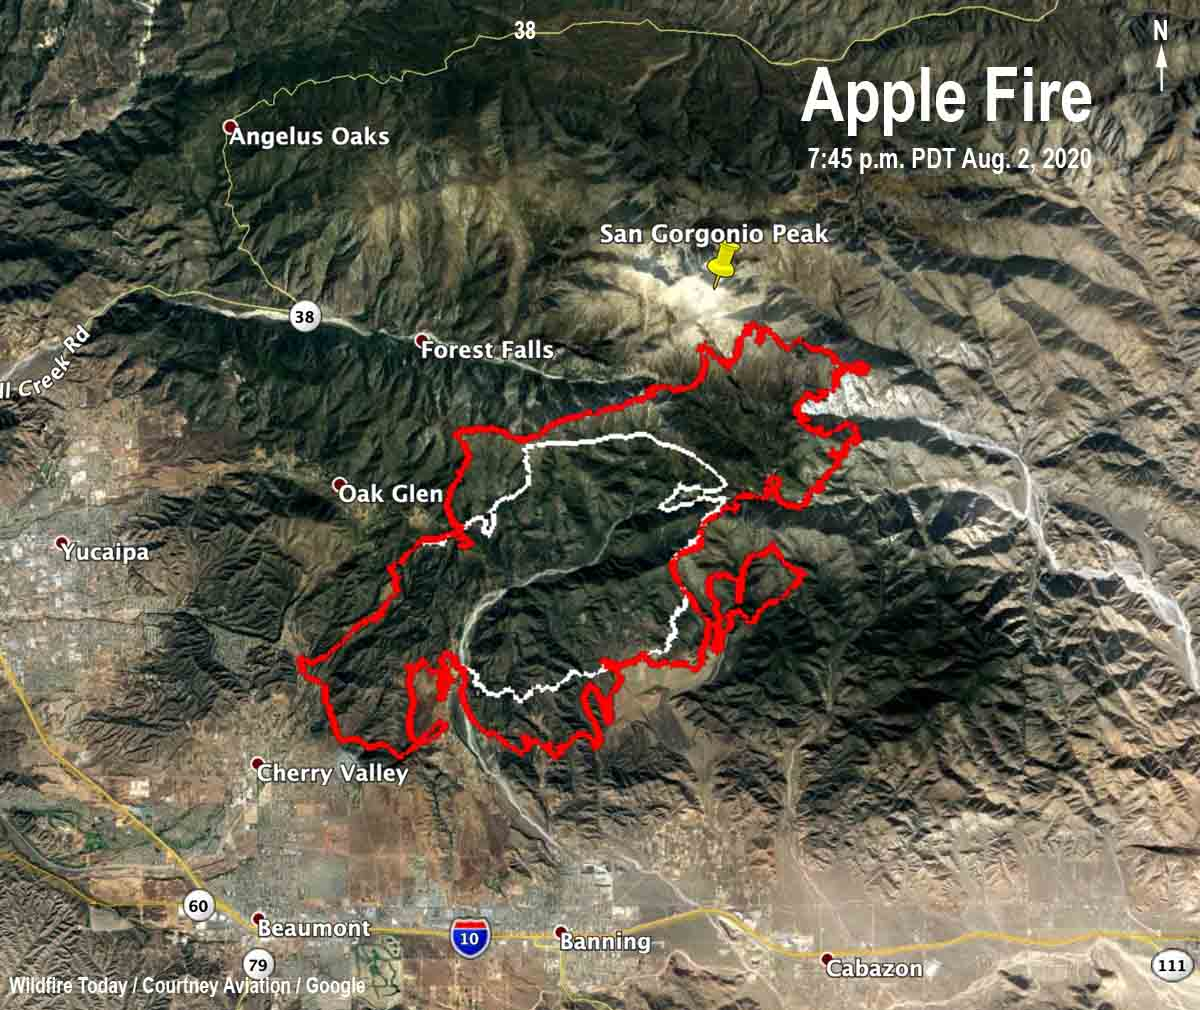 Map of the Apple Fire